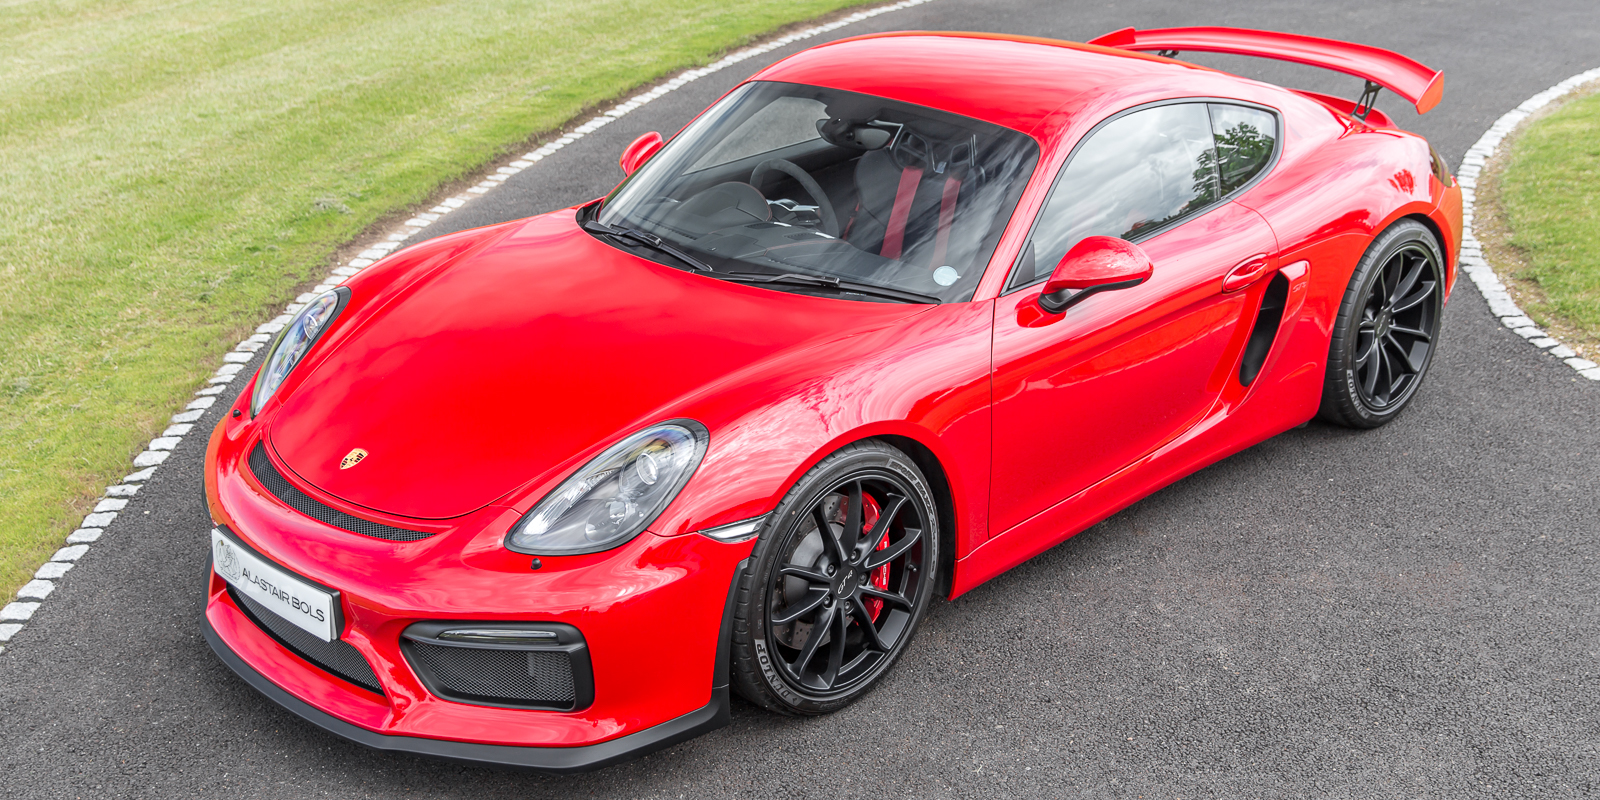 Porsche Cayman GT4 Clubsport Guards Red